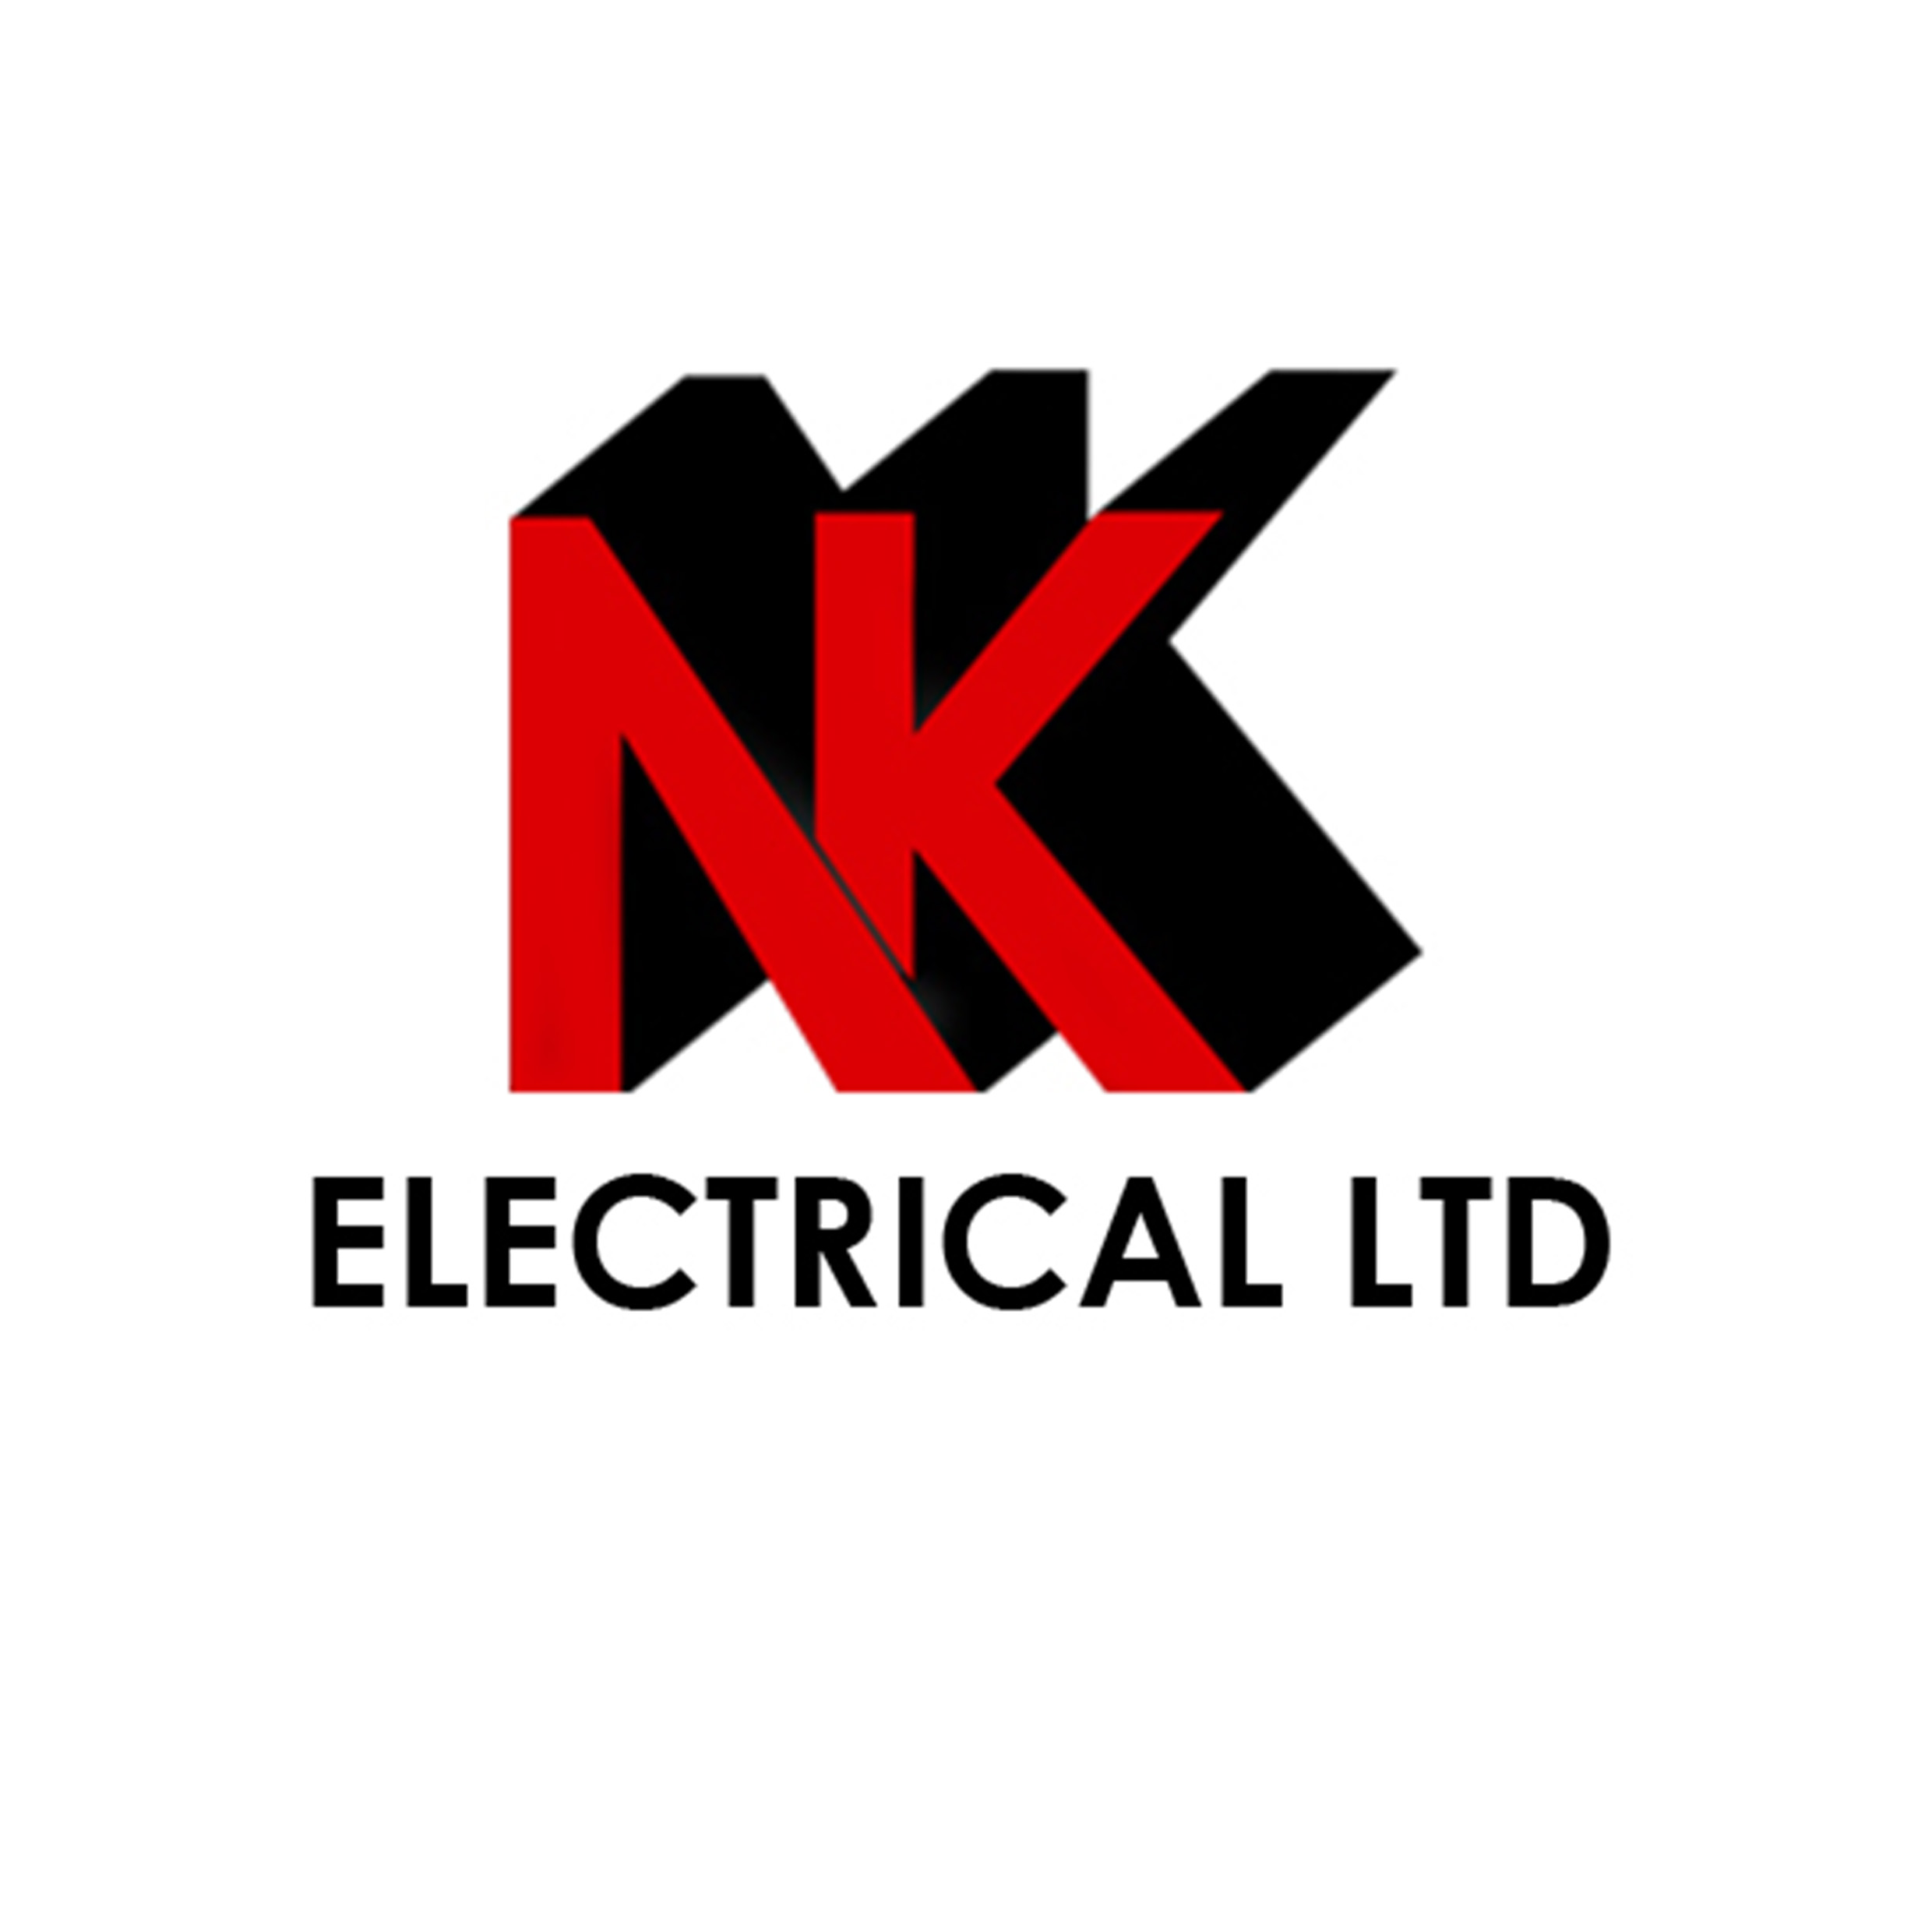 NK ELECTRICAL LTD